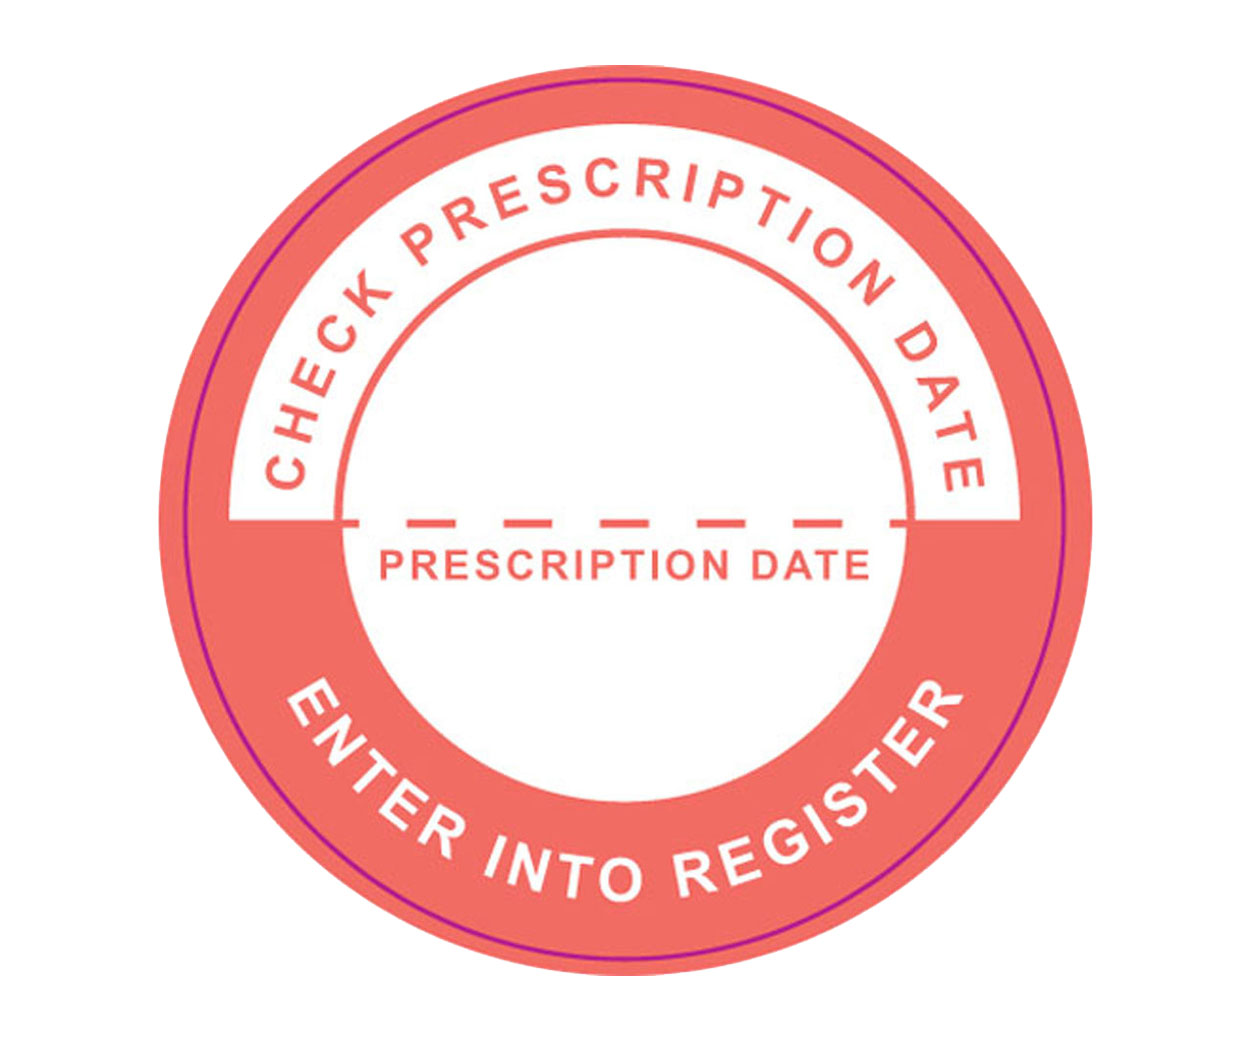 GREAT VALUE - Enter Into Register Prescription Alert Stickers - Pack of 1000